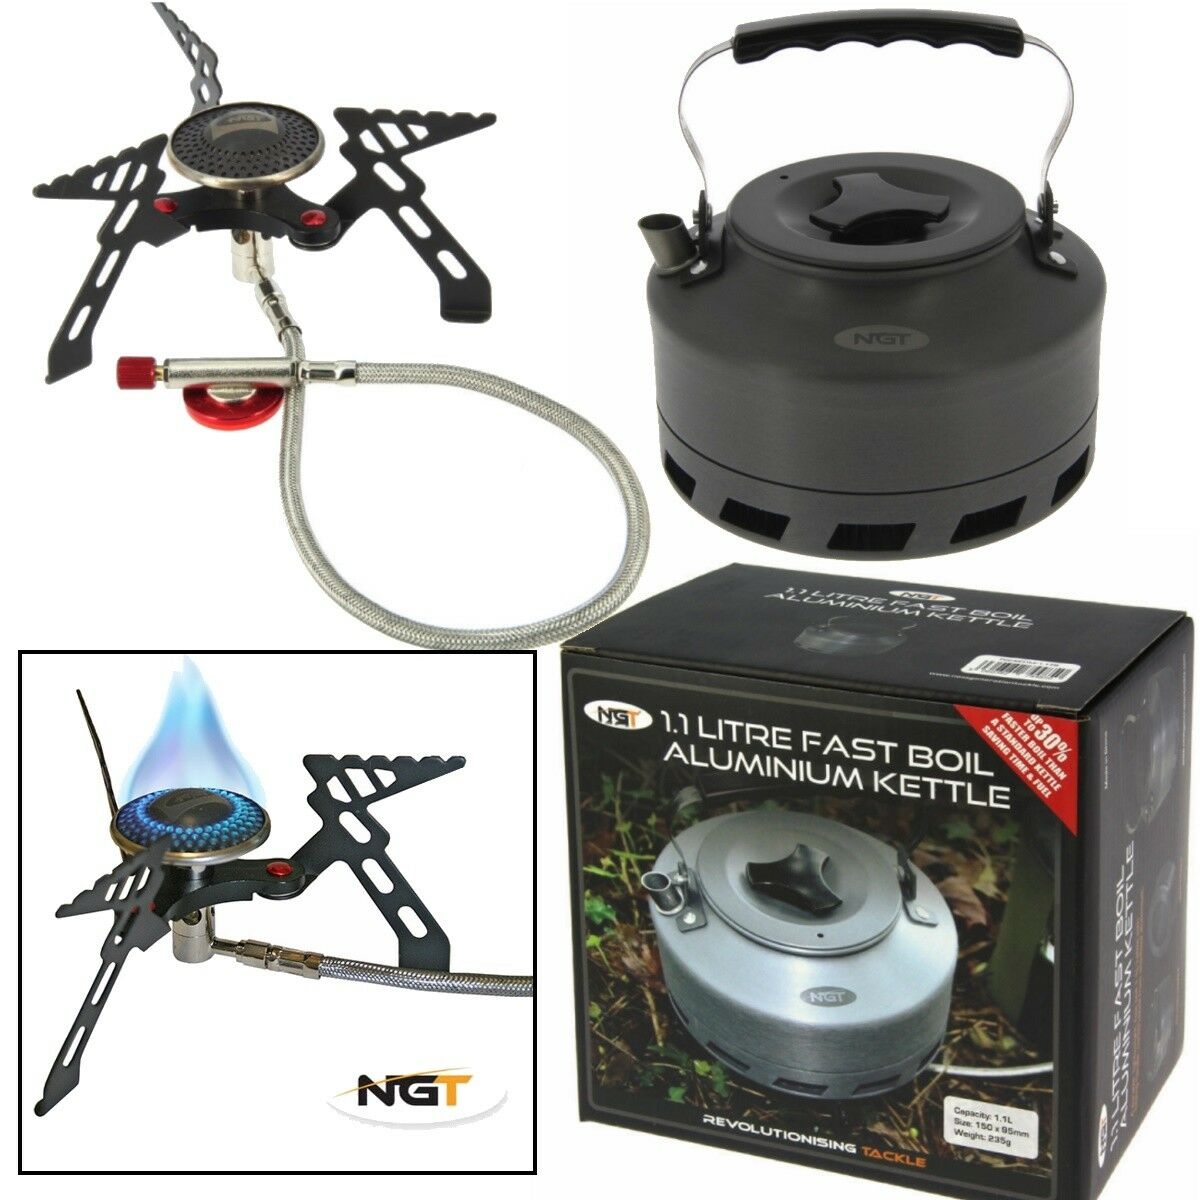 NGT Fast Boil Kettle and Gas Fishing Stove 3000w Portable Camping Cooker